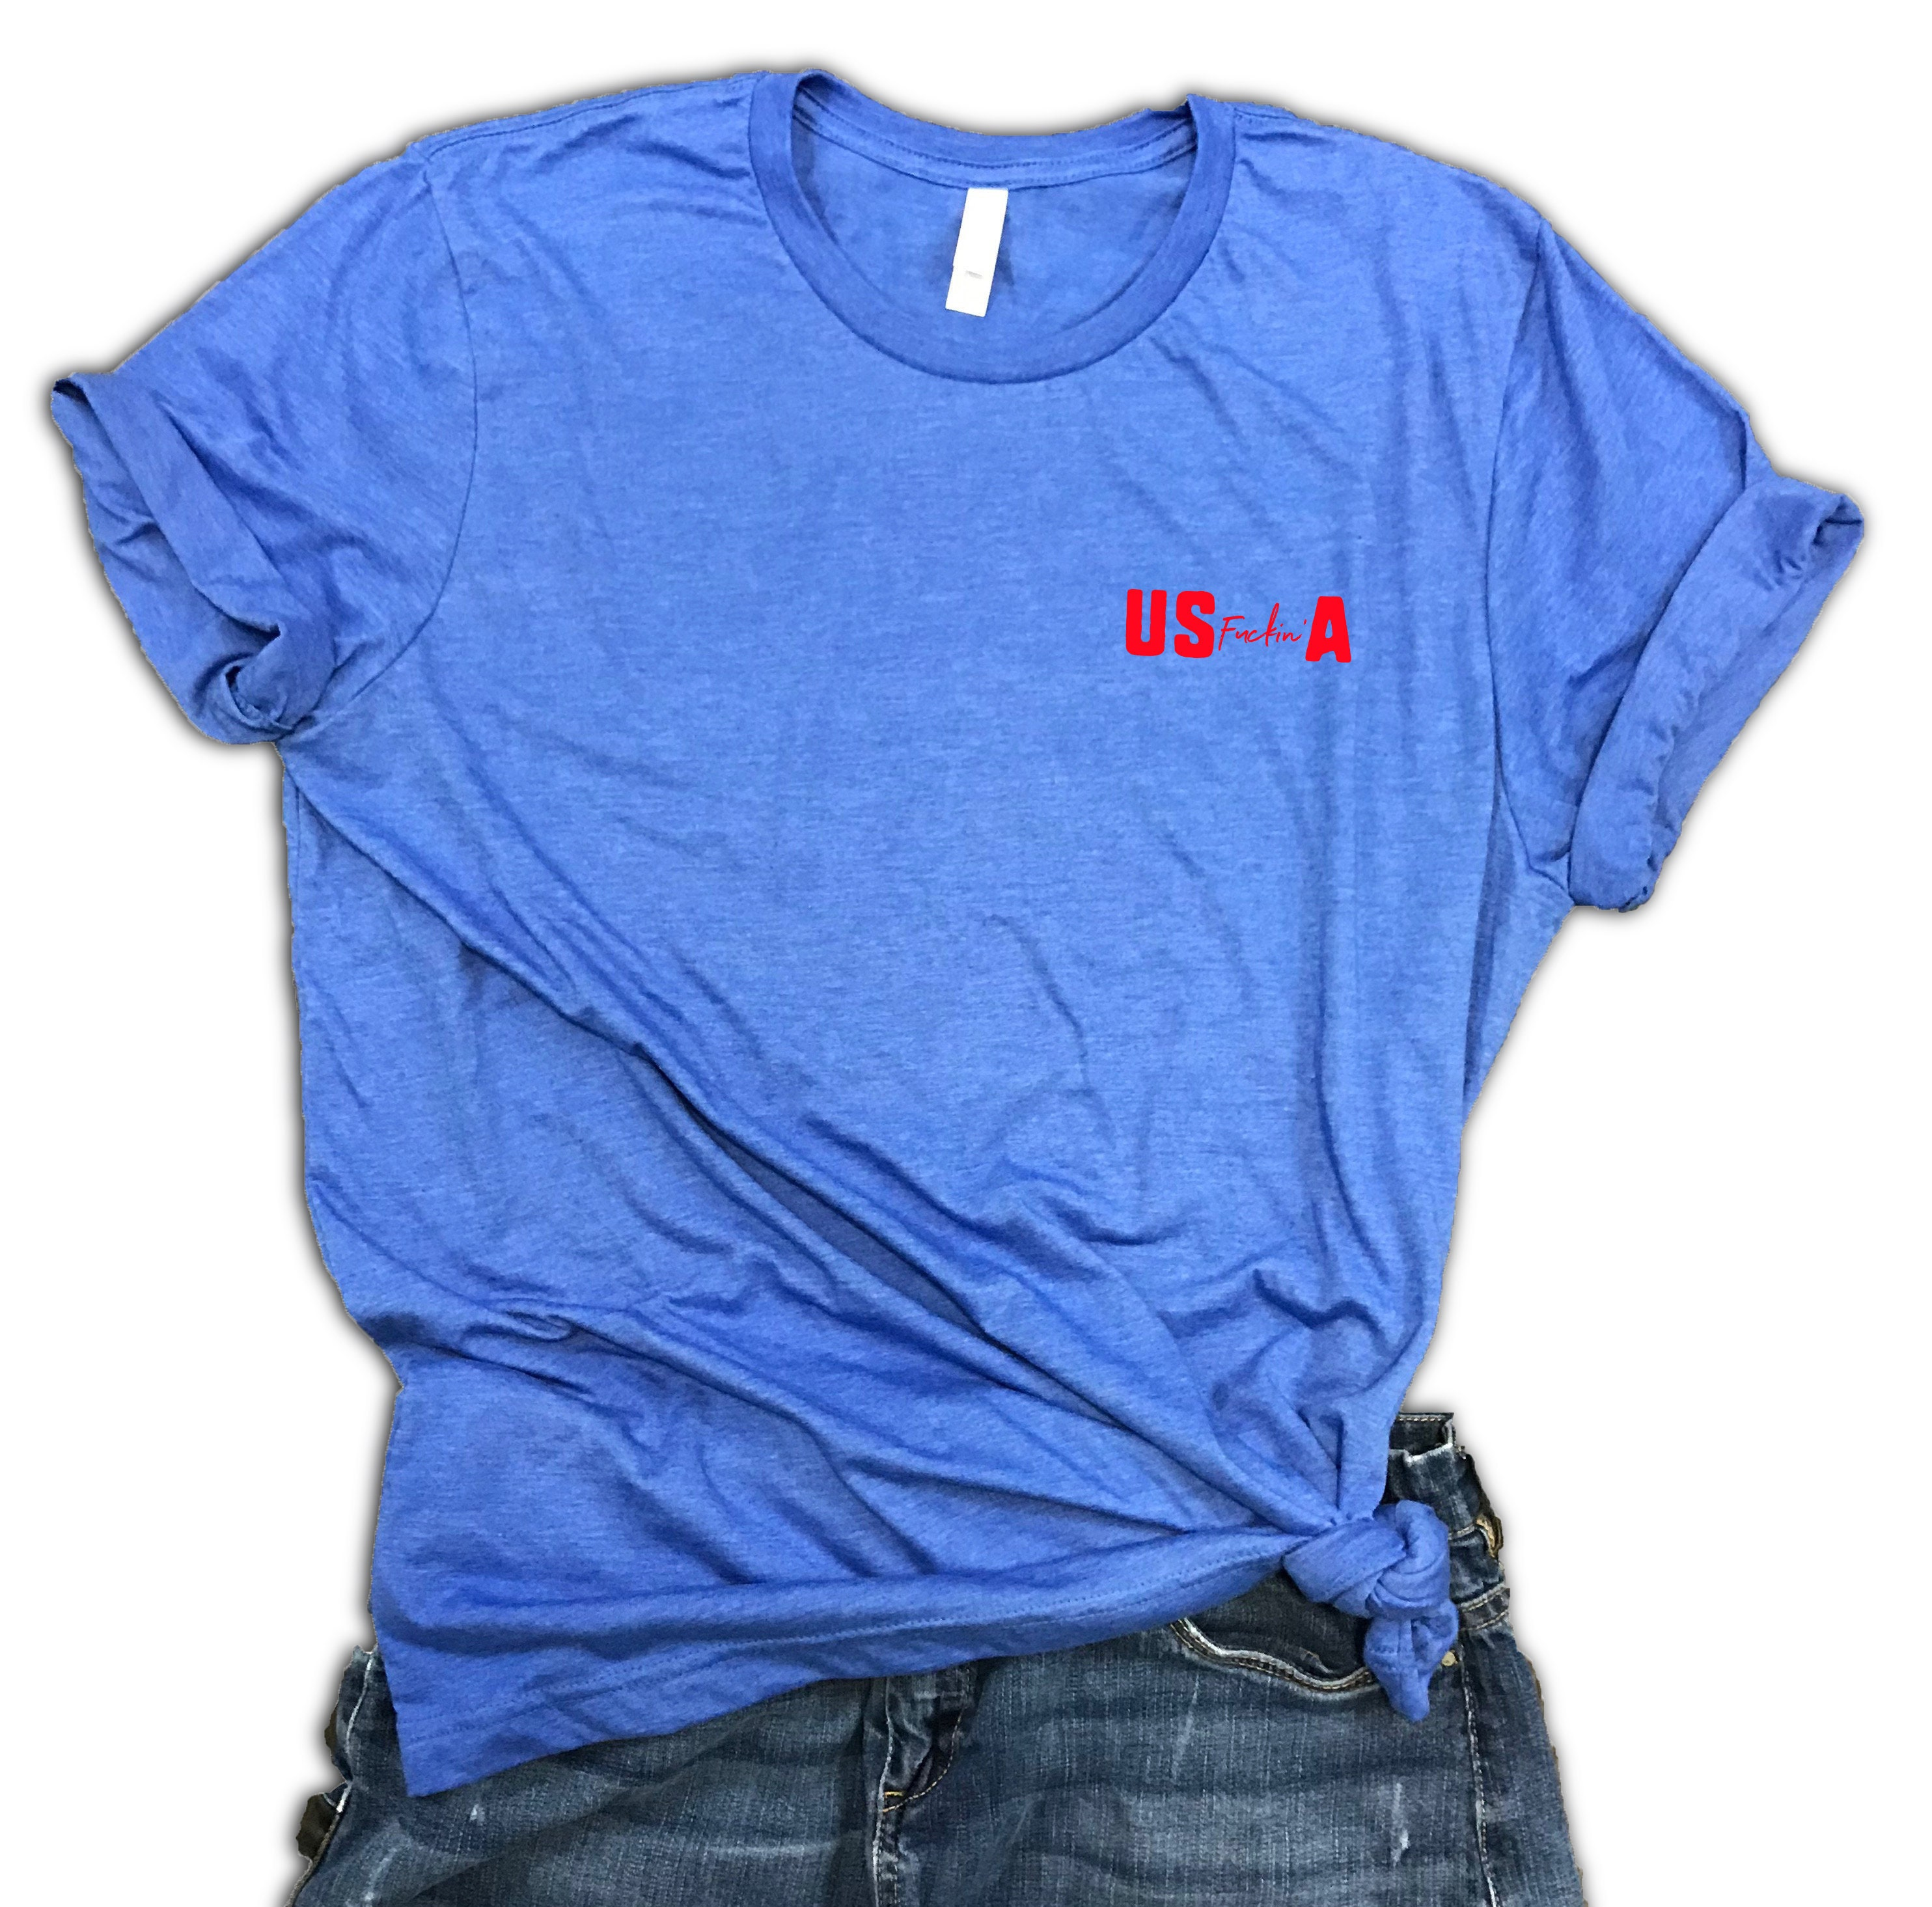 f165b4ba Funny USA July 4th Unisex Relaxed Fit Soft Blend Tee - merica shirt -  america shirt - fourth of july tee - patriotic shirt - USA drinking